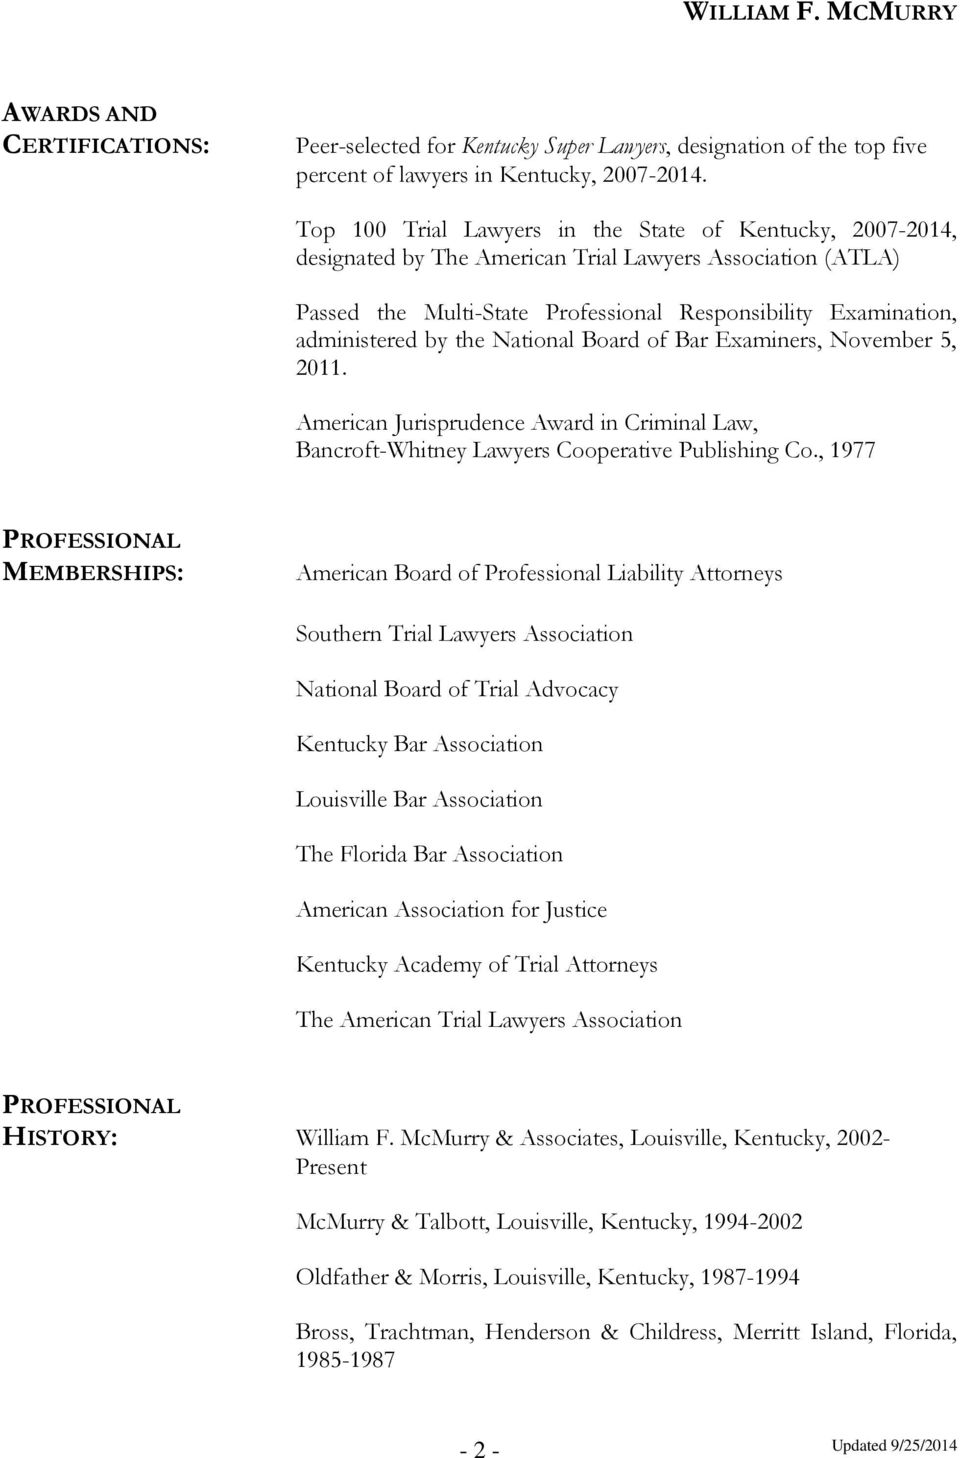 the National Board of Bar Examiners, November 5, 2011. American Jurisprudence Award in Criminal Law, Bancroft-Whitney Lawyers Cooperative Publishing Co.